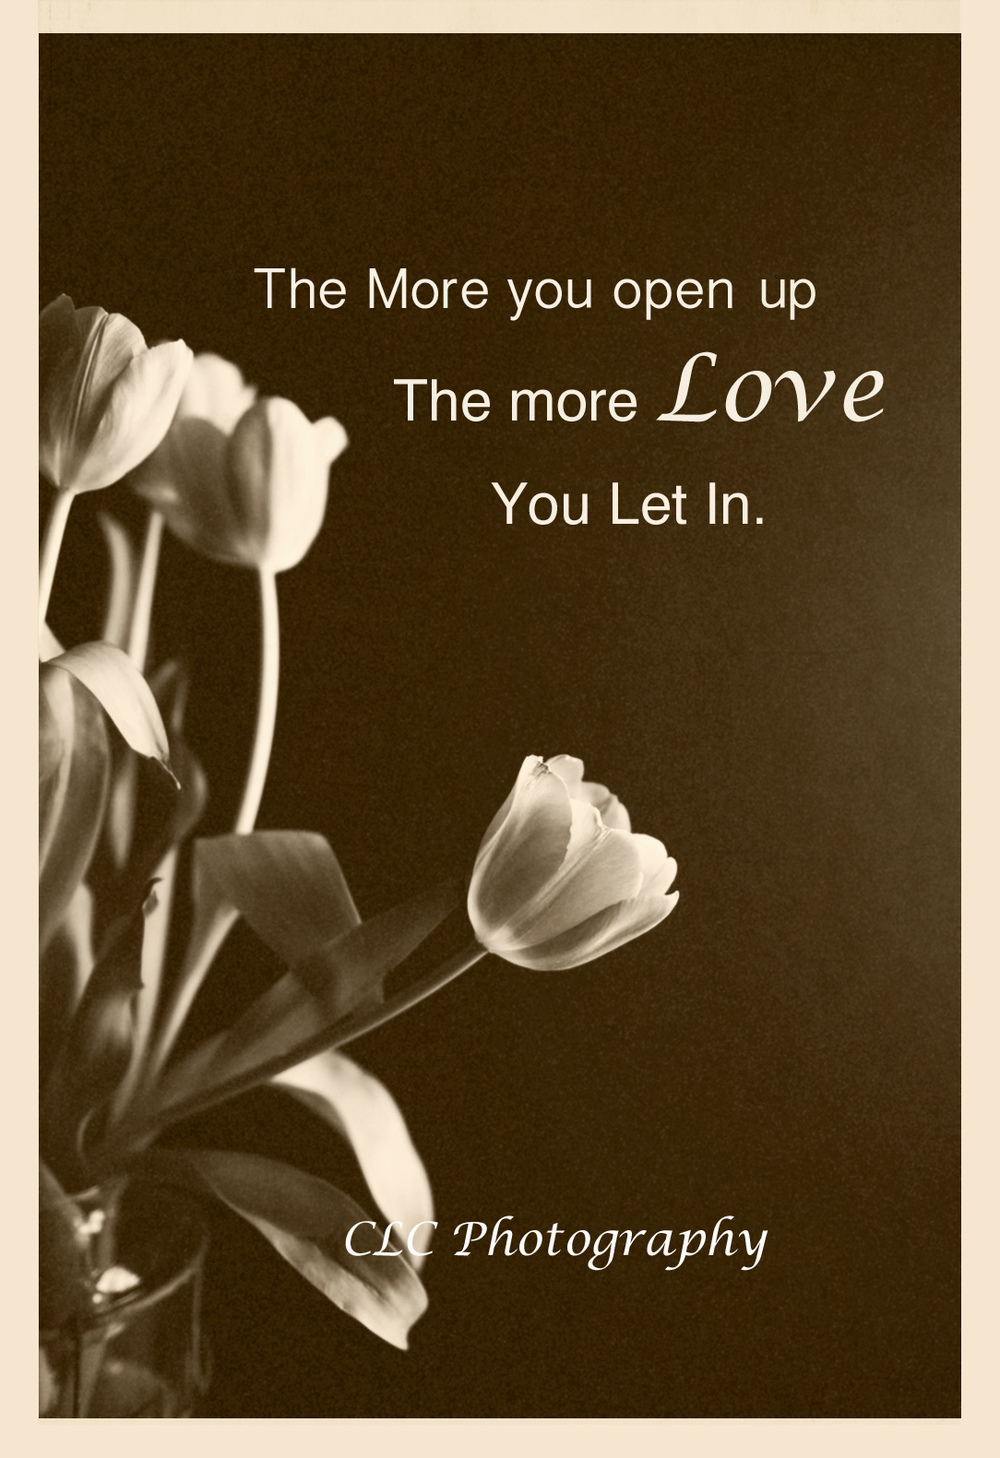 Let Love In...